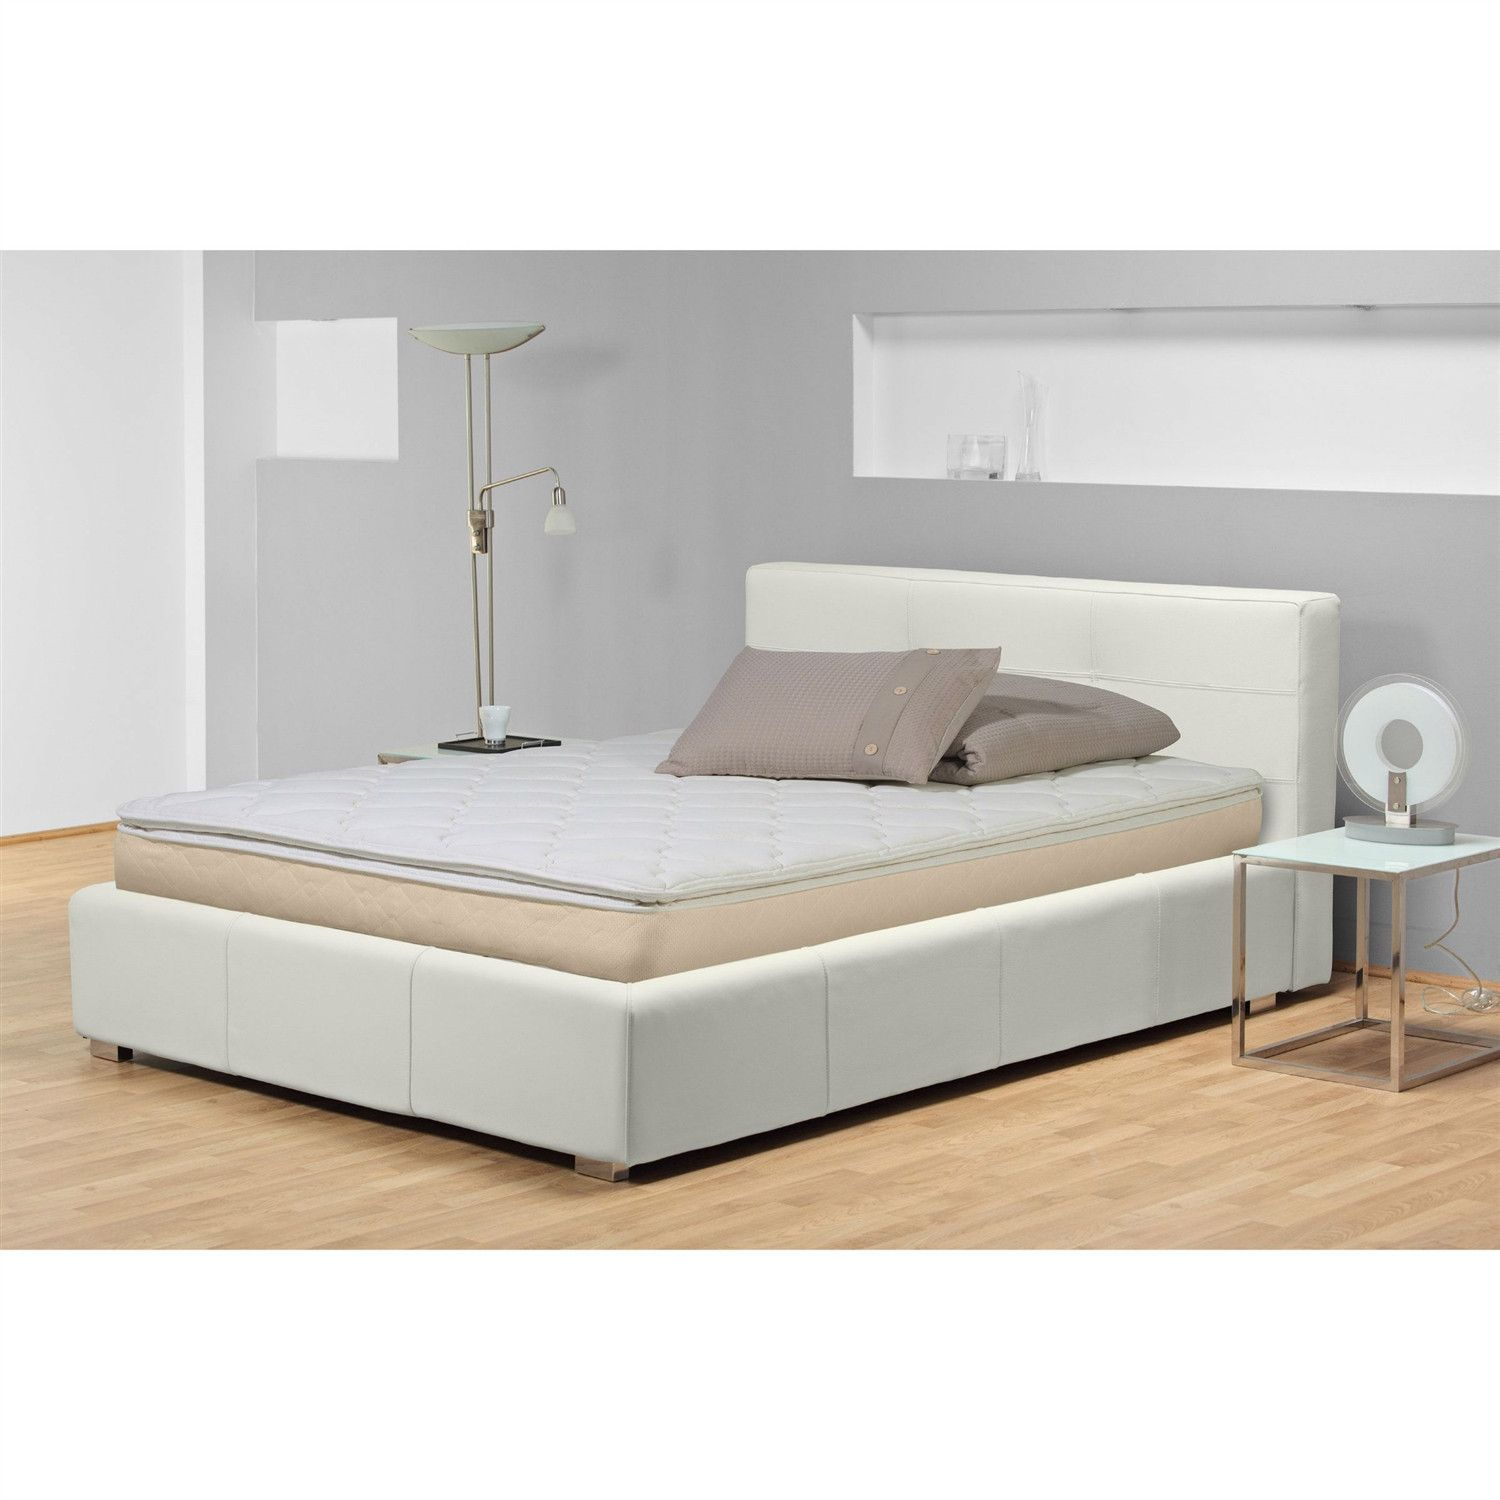 Joseph Steel Platform Bed Frame Zinus Diy King Bed Frame Bed Frame Steel Bed Frame